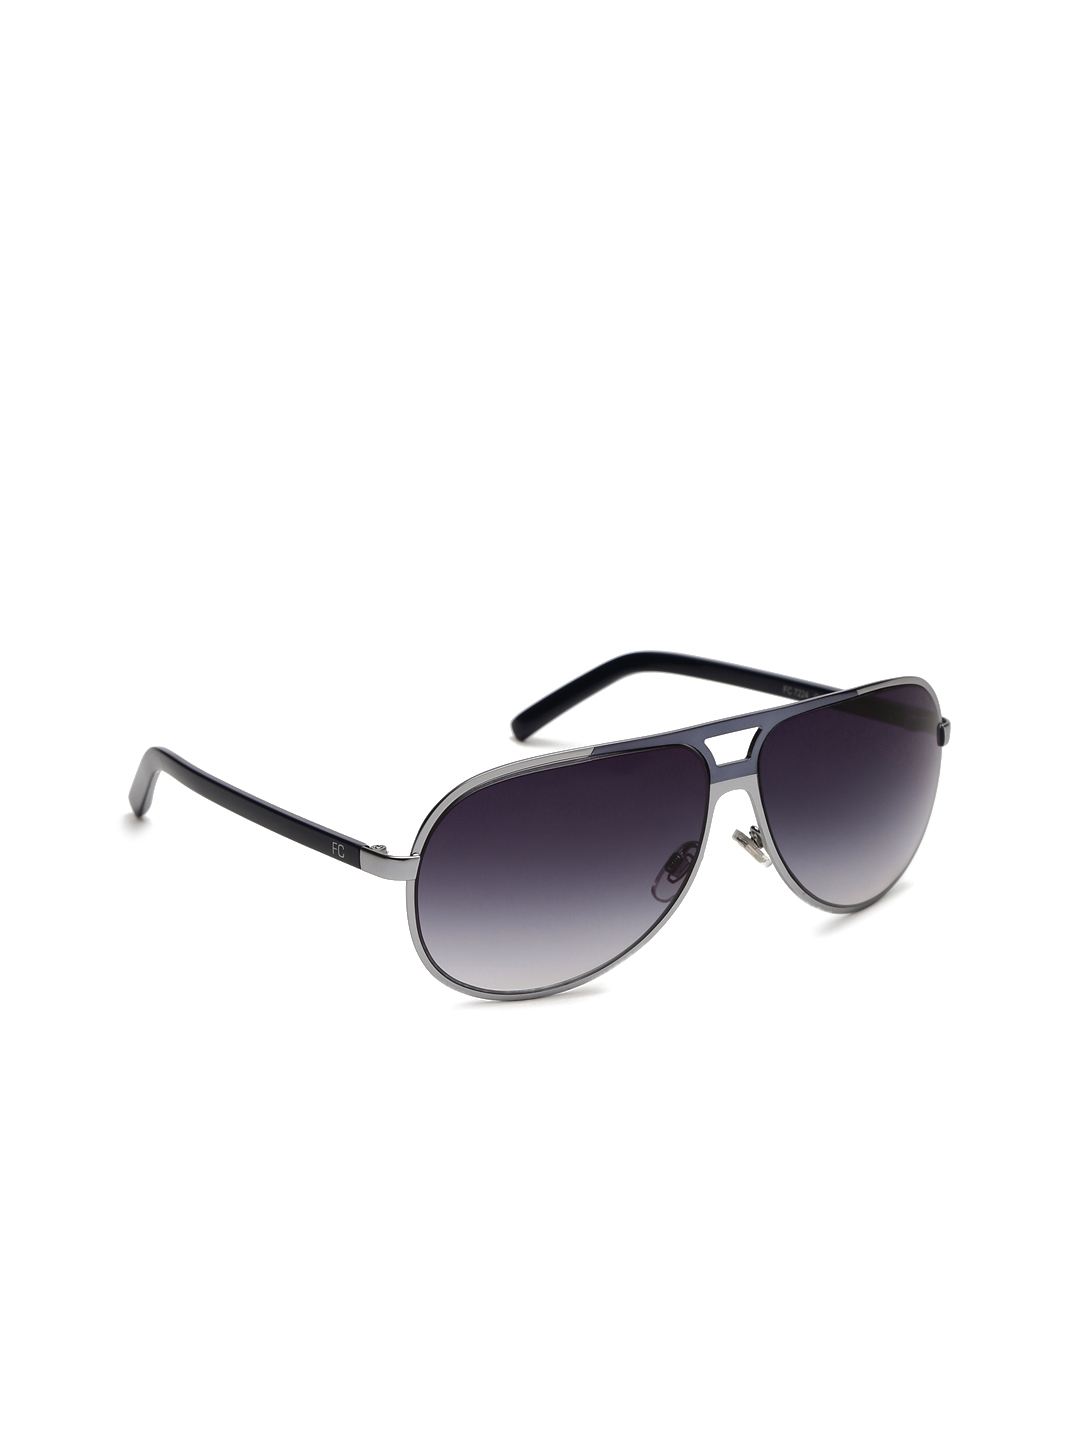 French Connection Men Aviator Sunglasses FC 7224 C1 S